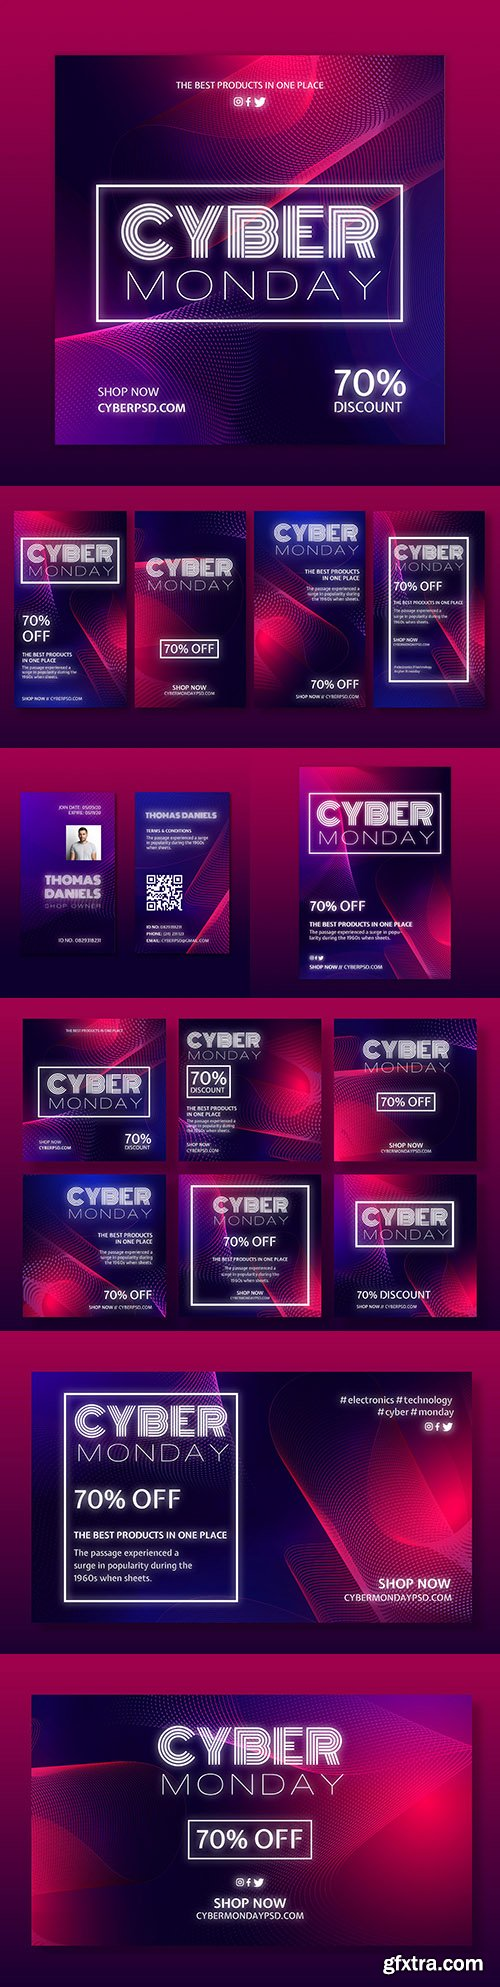 Cyber Monday sale design illustration template